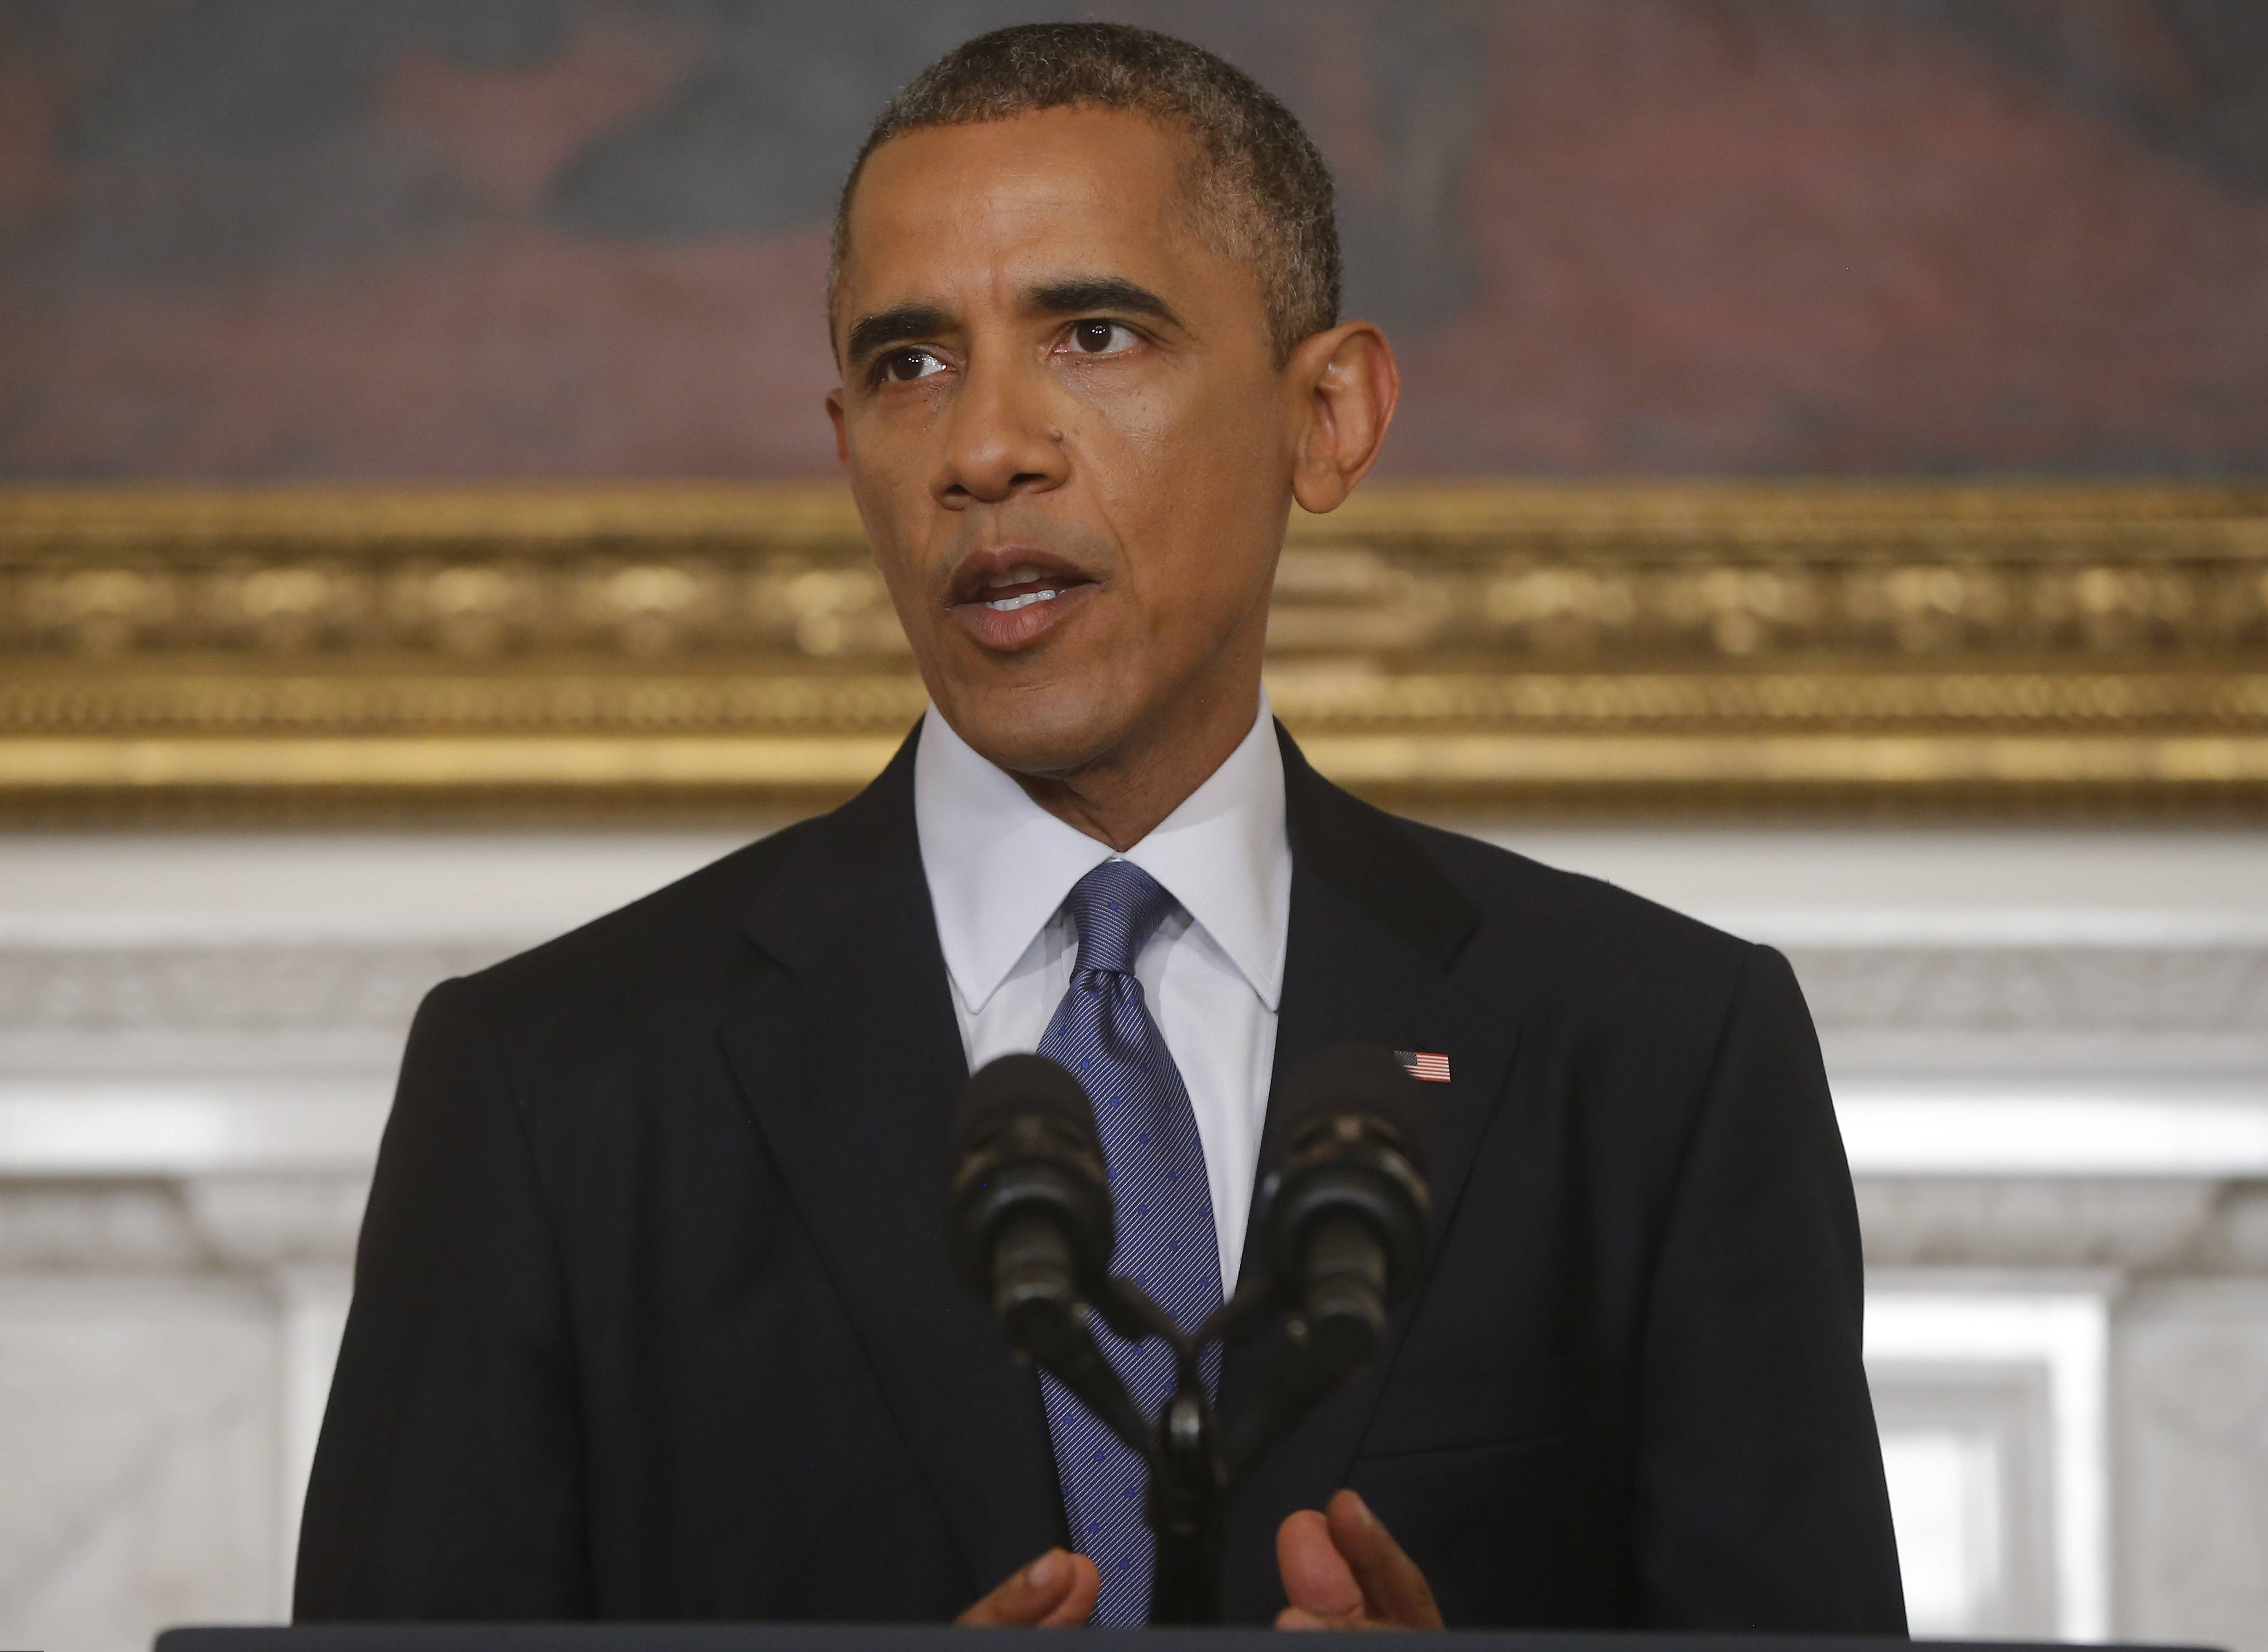 Obama OKs airstrikes 'if necessary' on rebels in Iraq